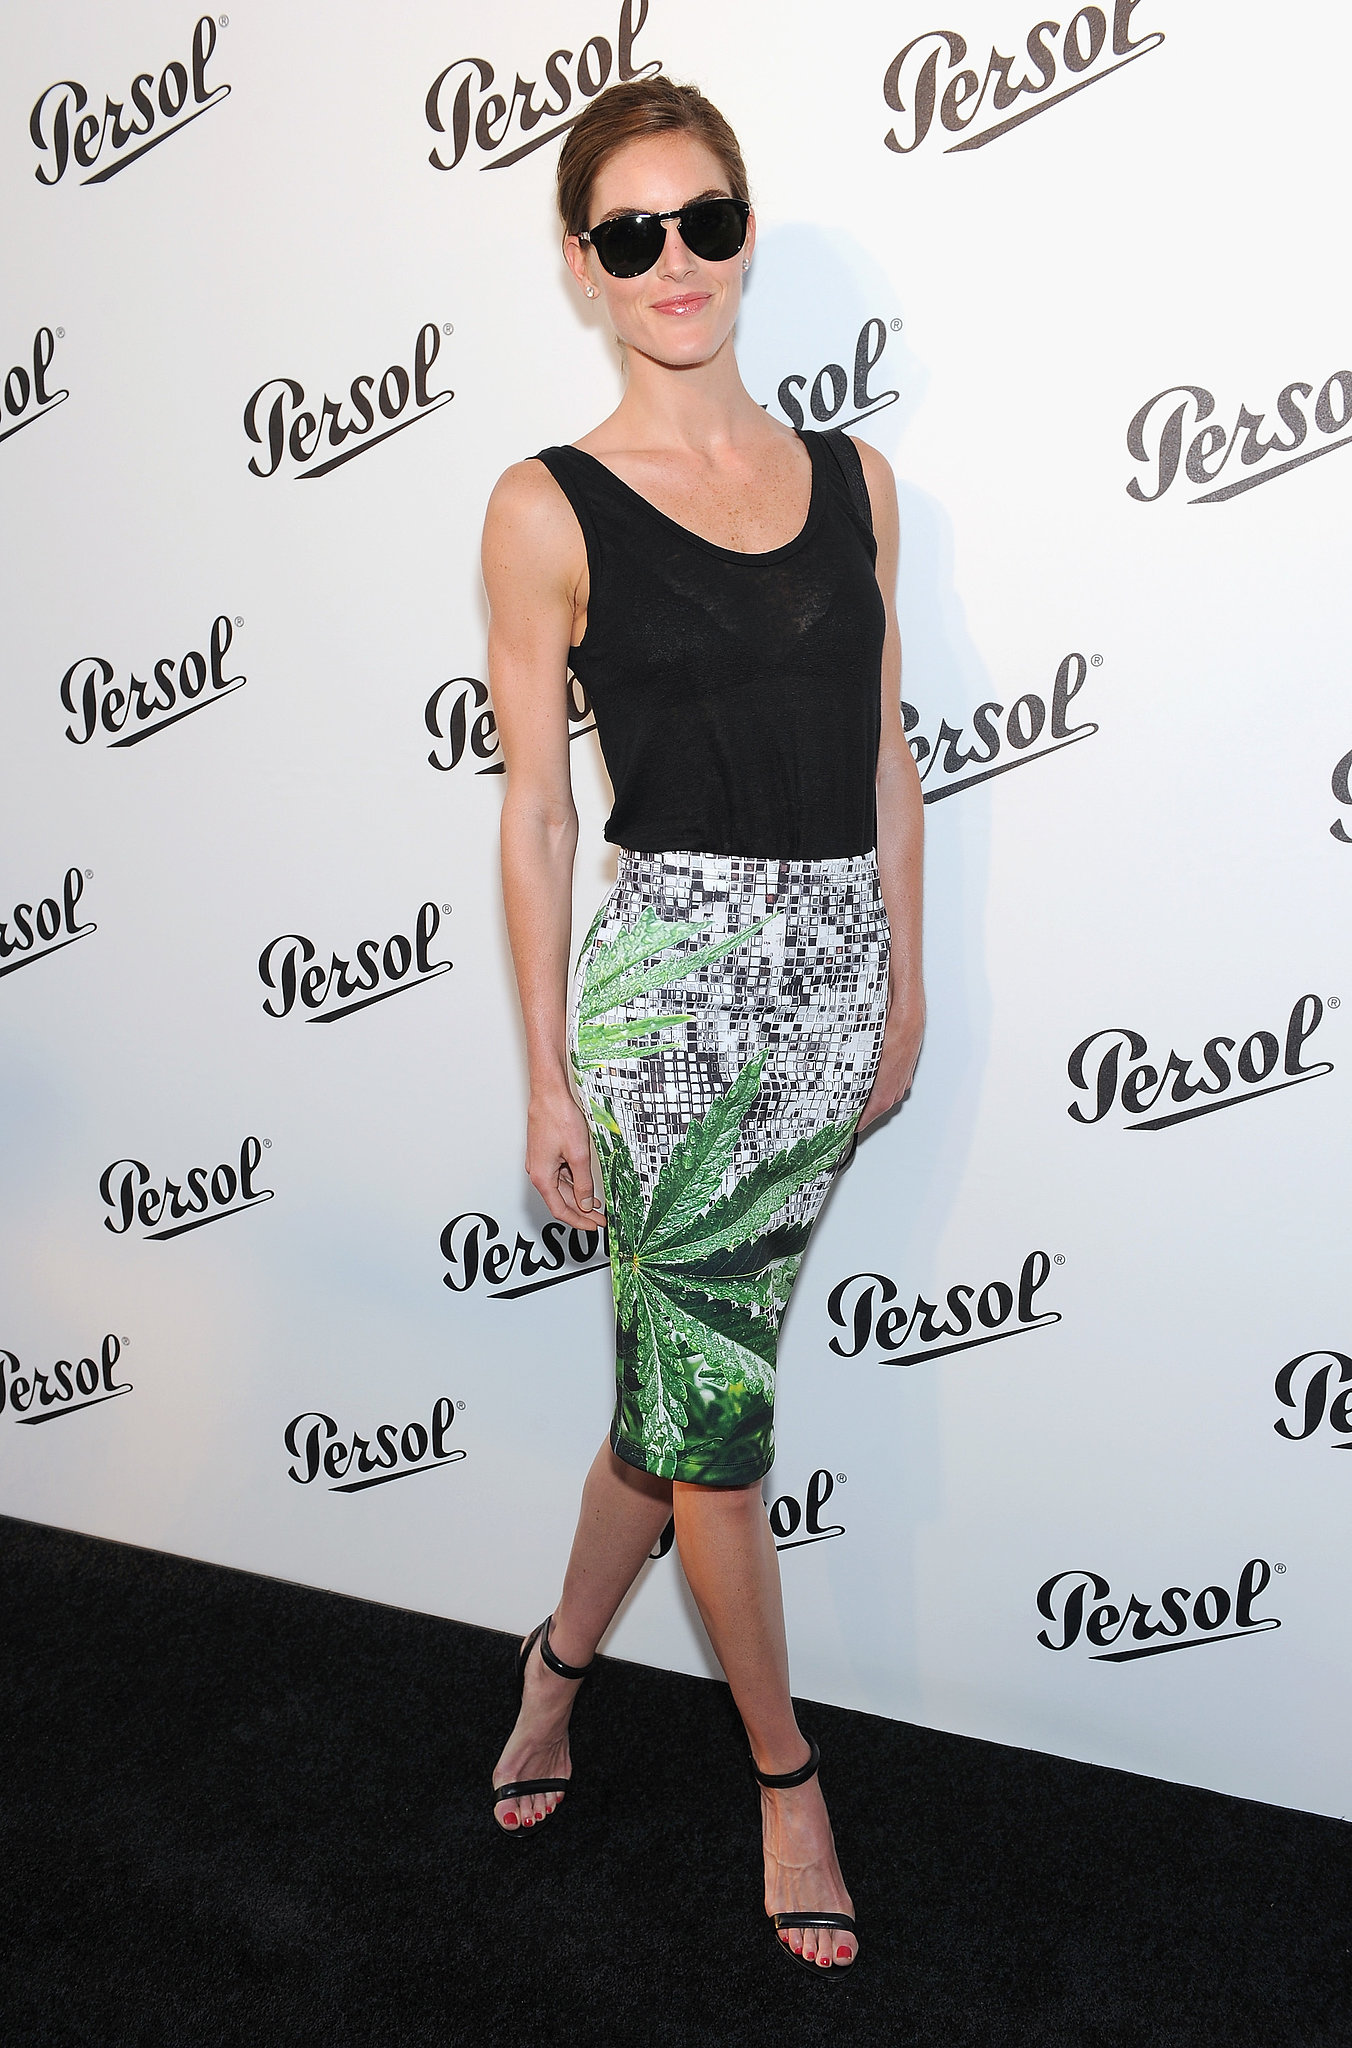 Hilary Rhoda accessorized her summery separates with a strikin